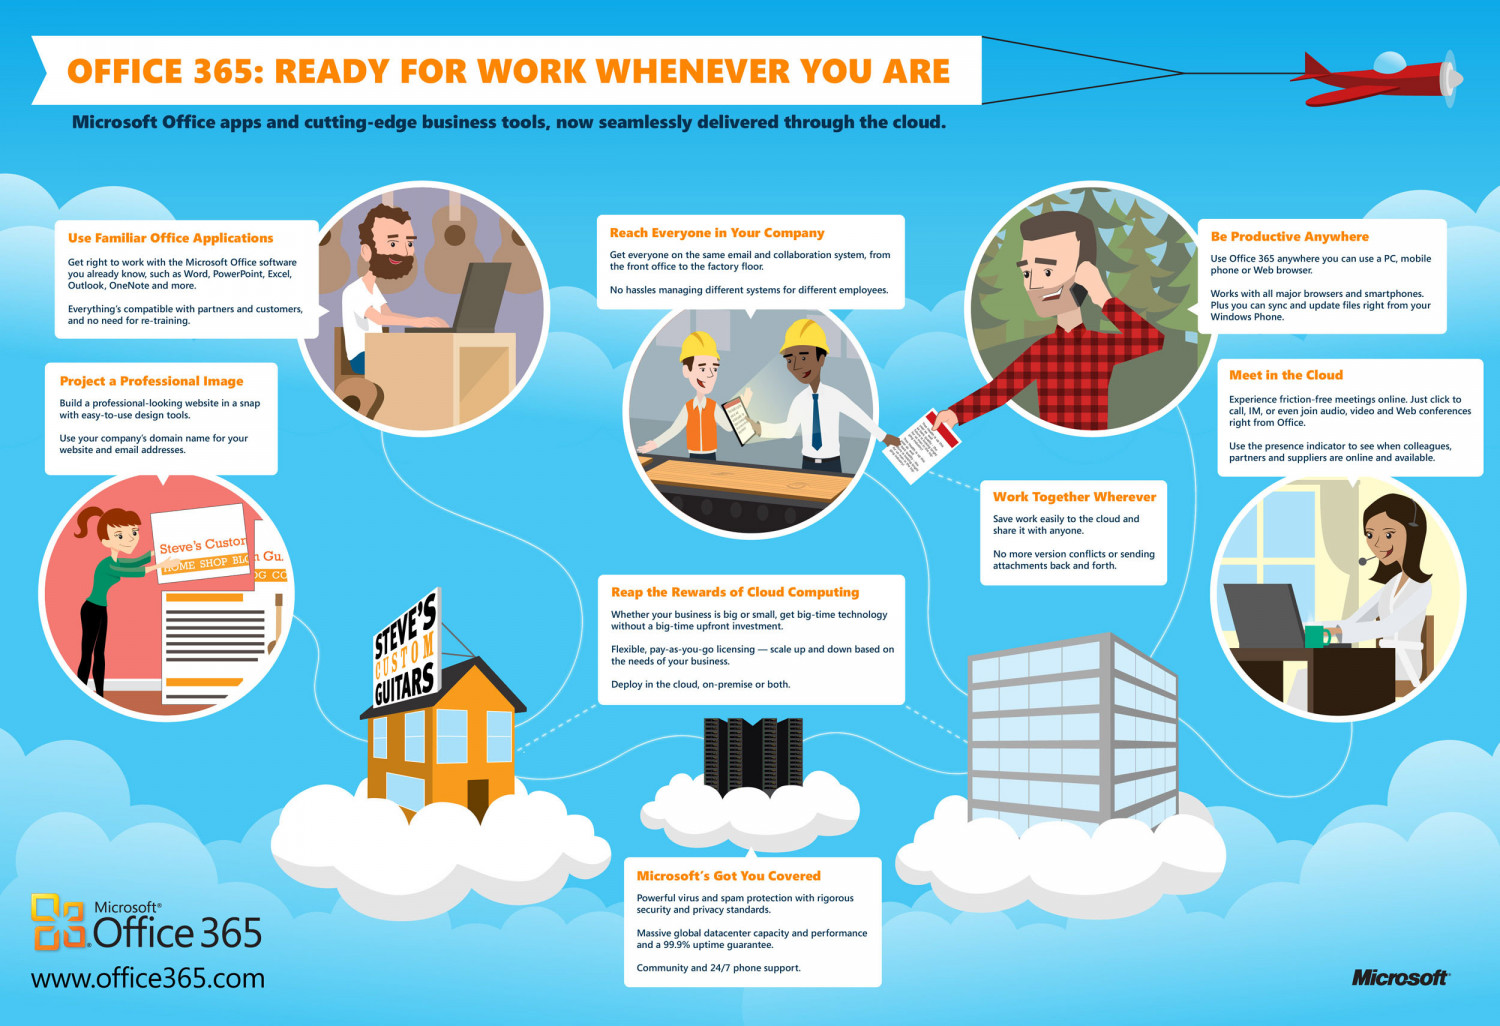 Office 365 Ready for Work Whenever You Are Infographic